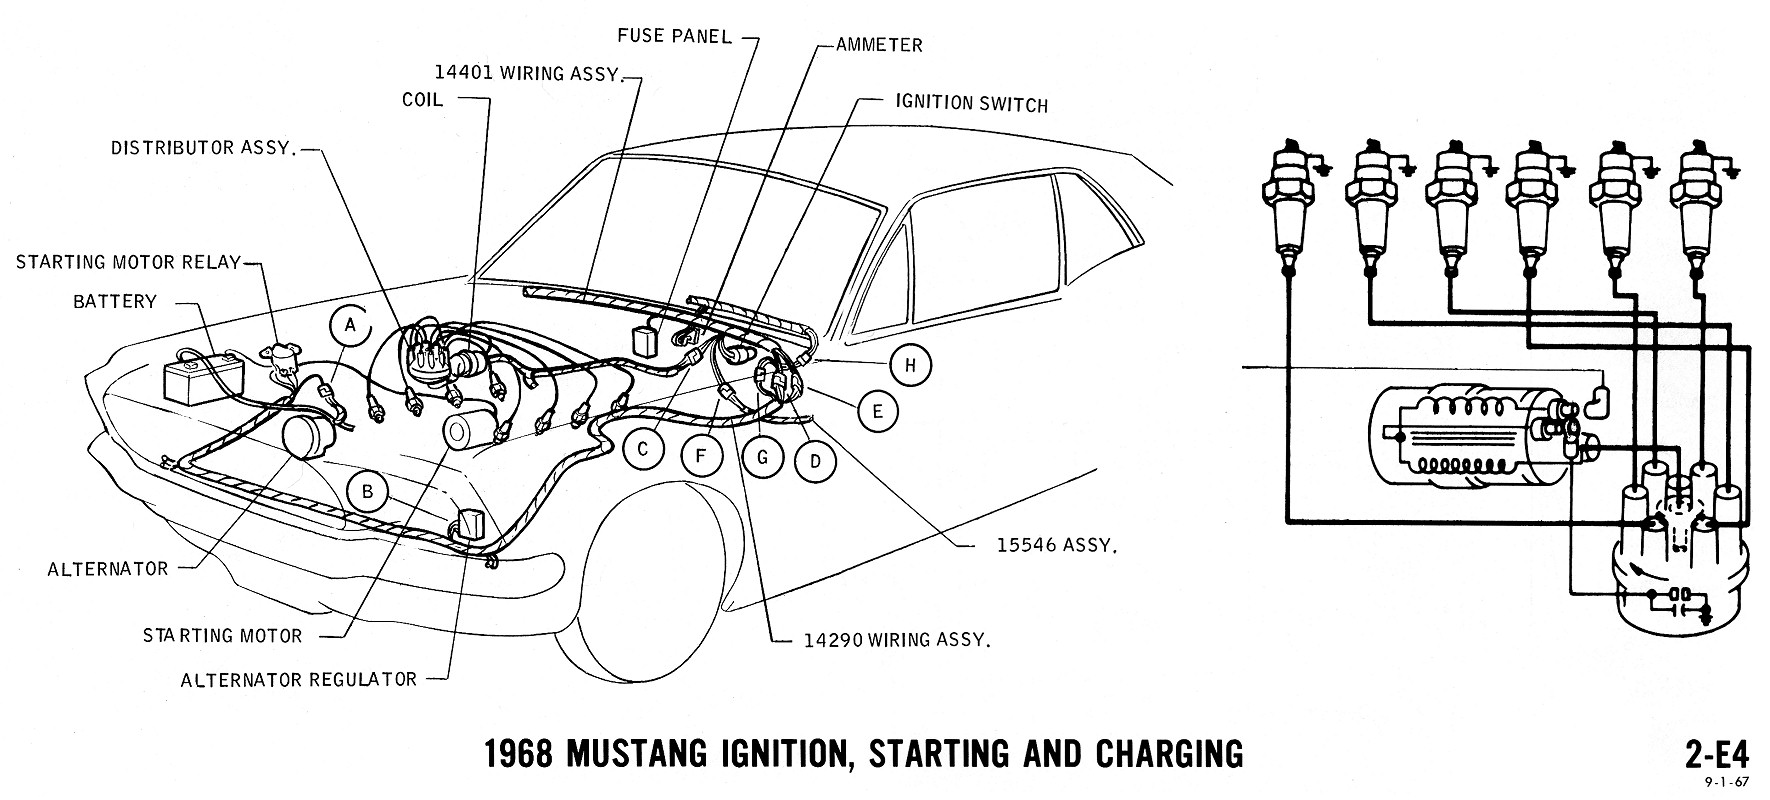 1968 Mustang Wiring Diagrams and Vacuum Schematics Average Joe – Exterior Lights Wiring Diagram 1996 Ford